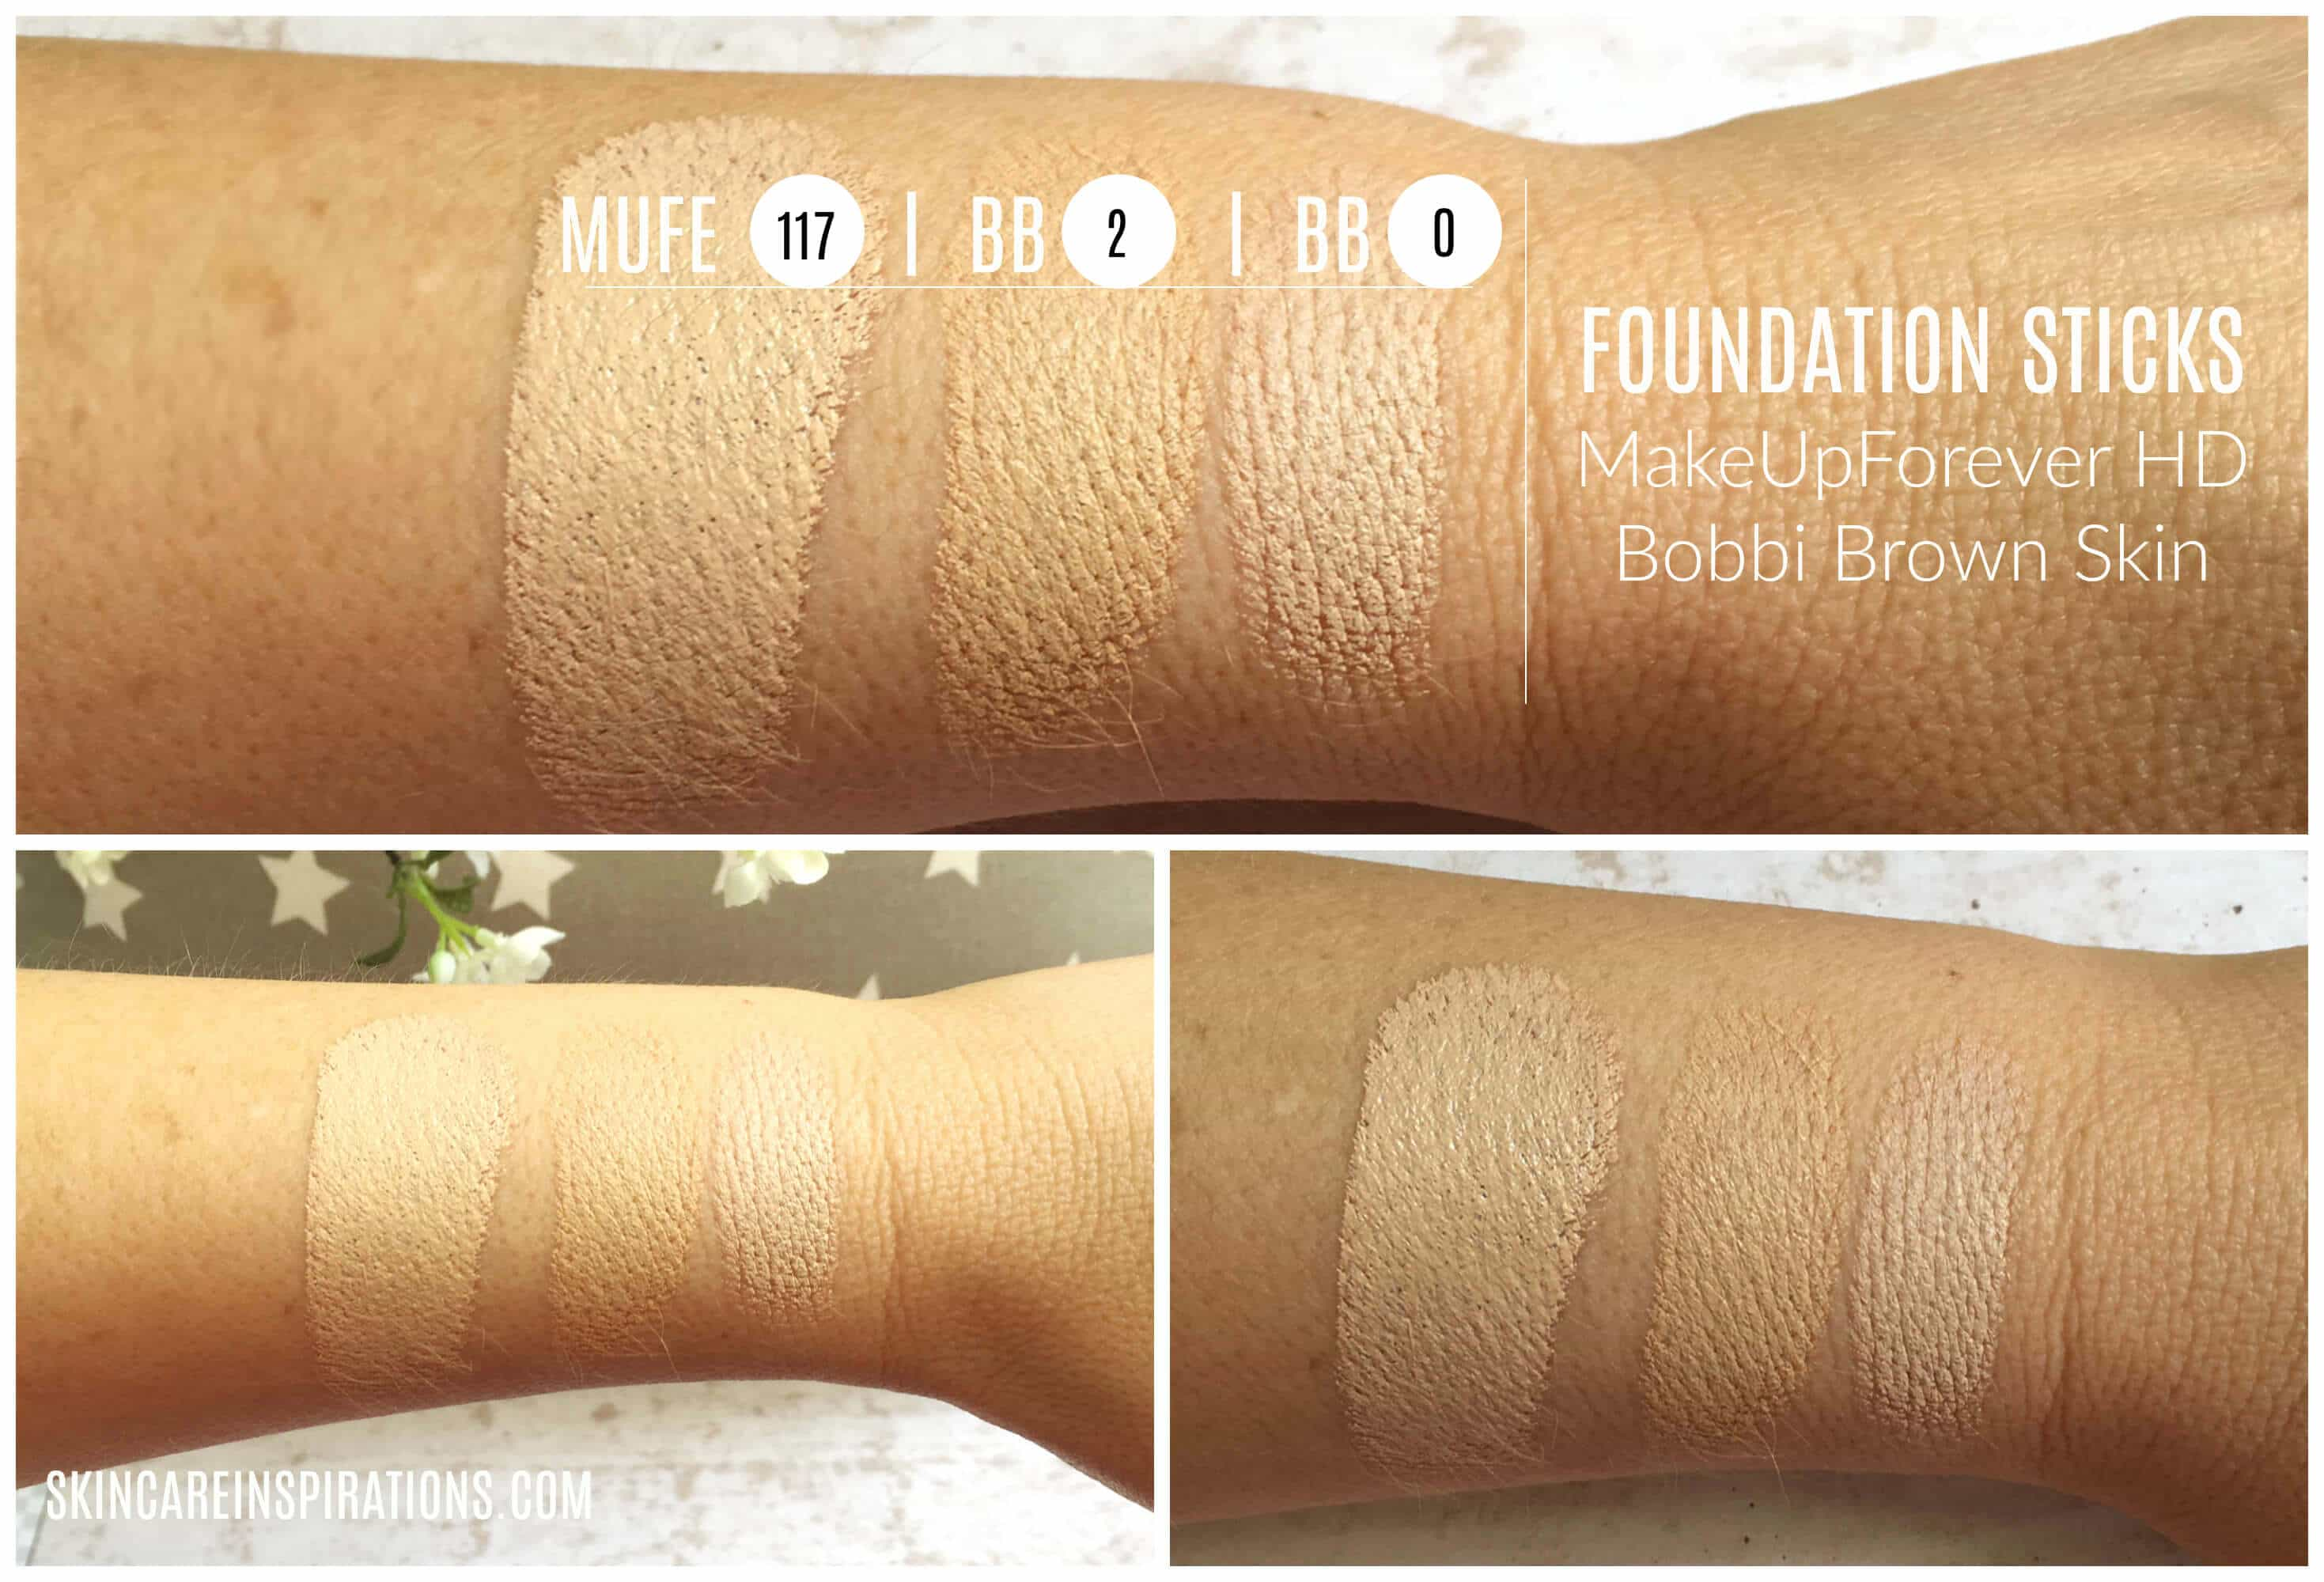 Foundation Stick Comparison BB MUFE (1)